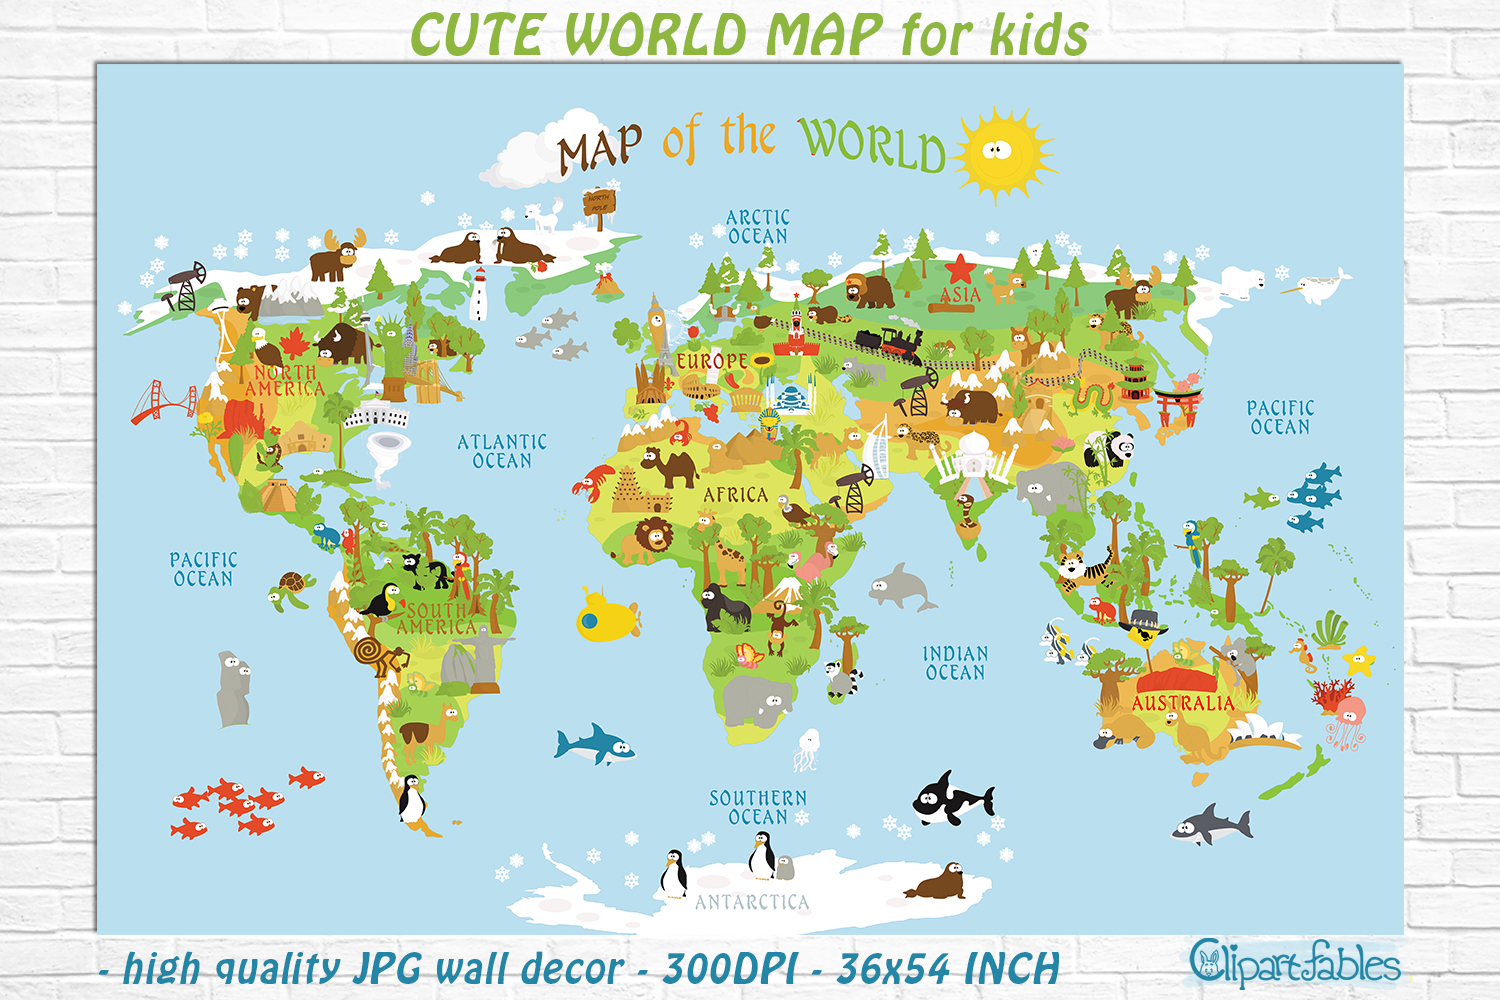 picture regarding Printable World Map referred to as Lovely Printable Entire world MAP for little ones - gender impartial house artwork